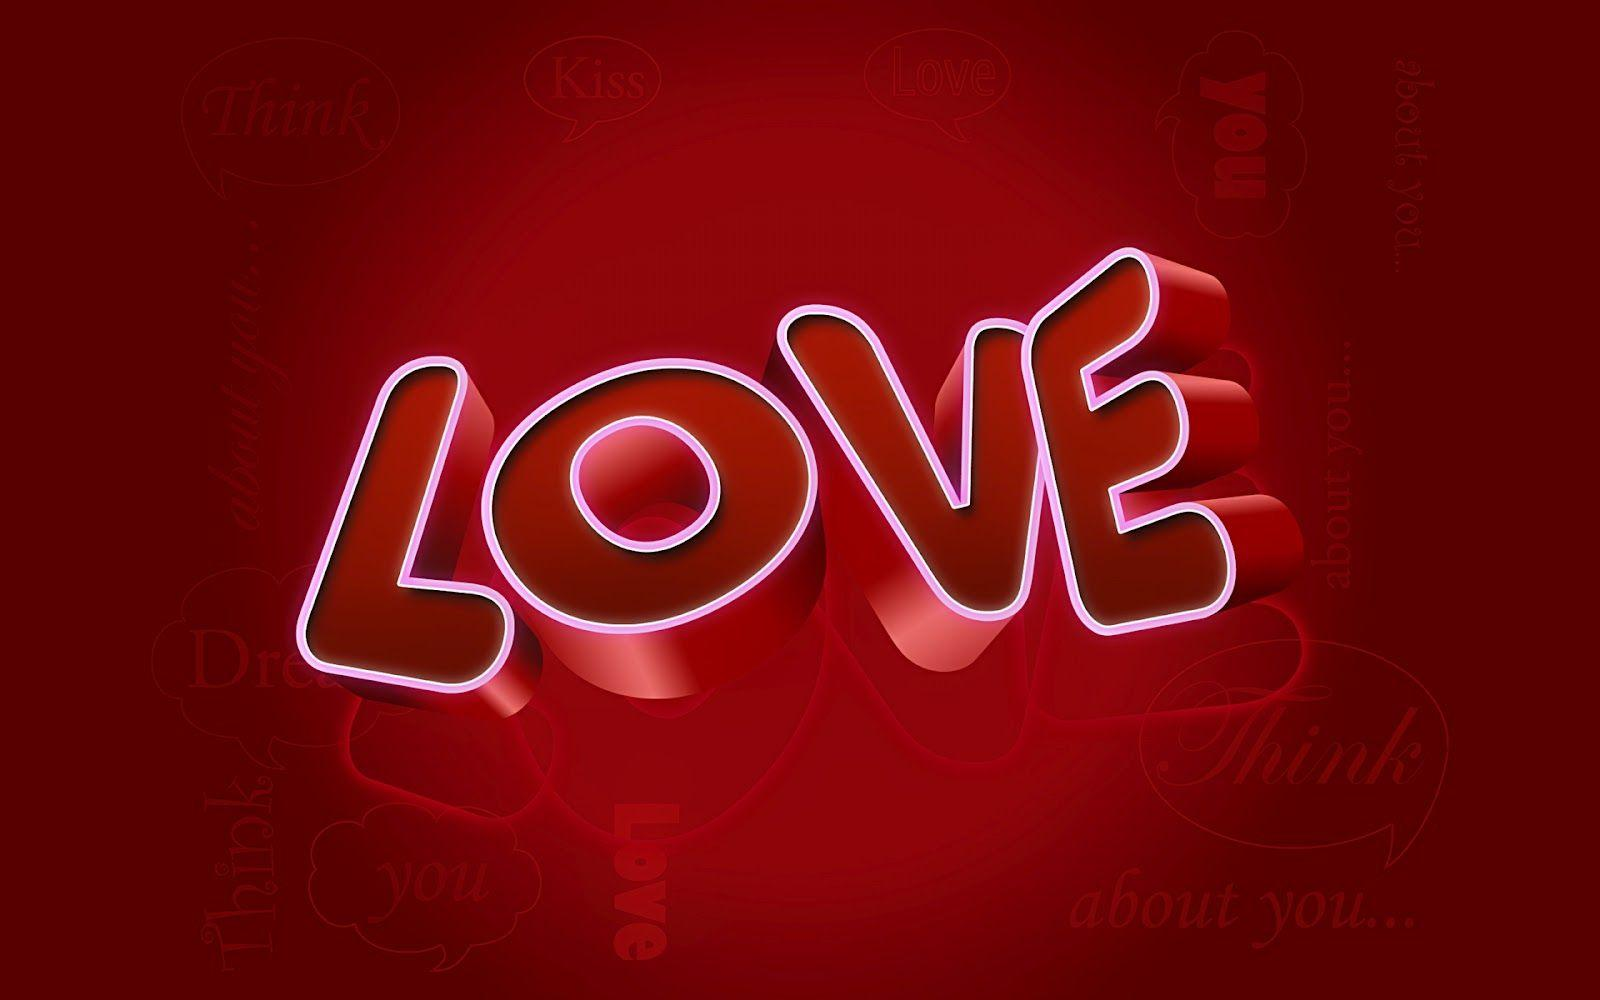 Hd wallpaper i love you - Wallpaper Wallpapers Of P S I Love You